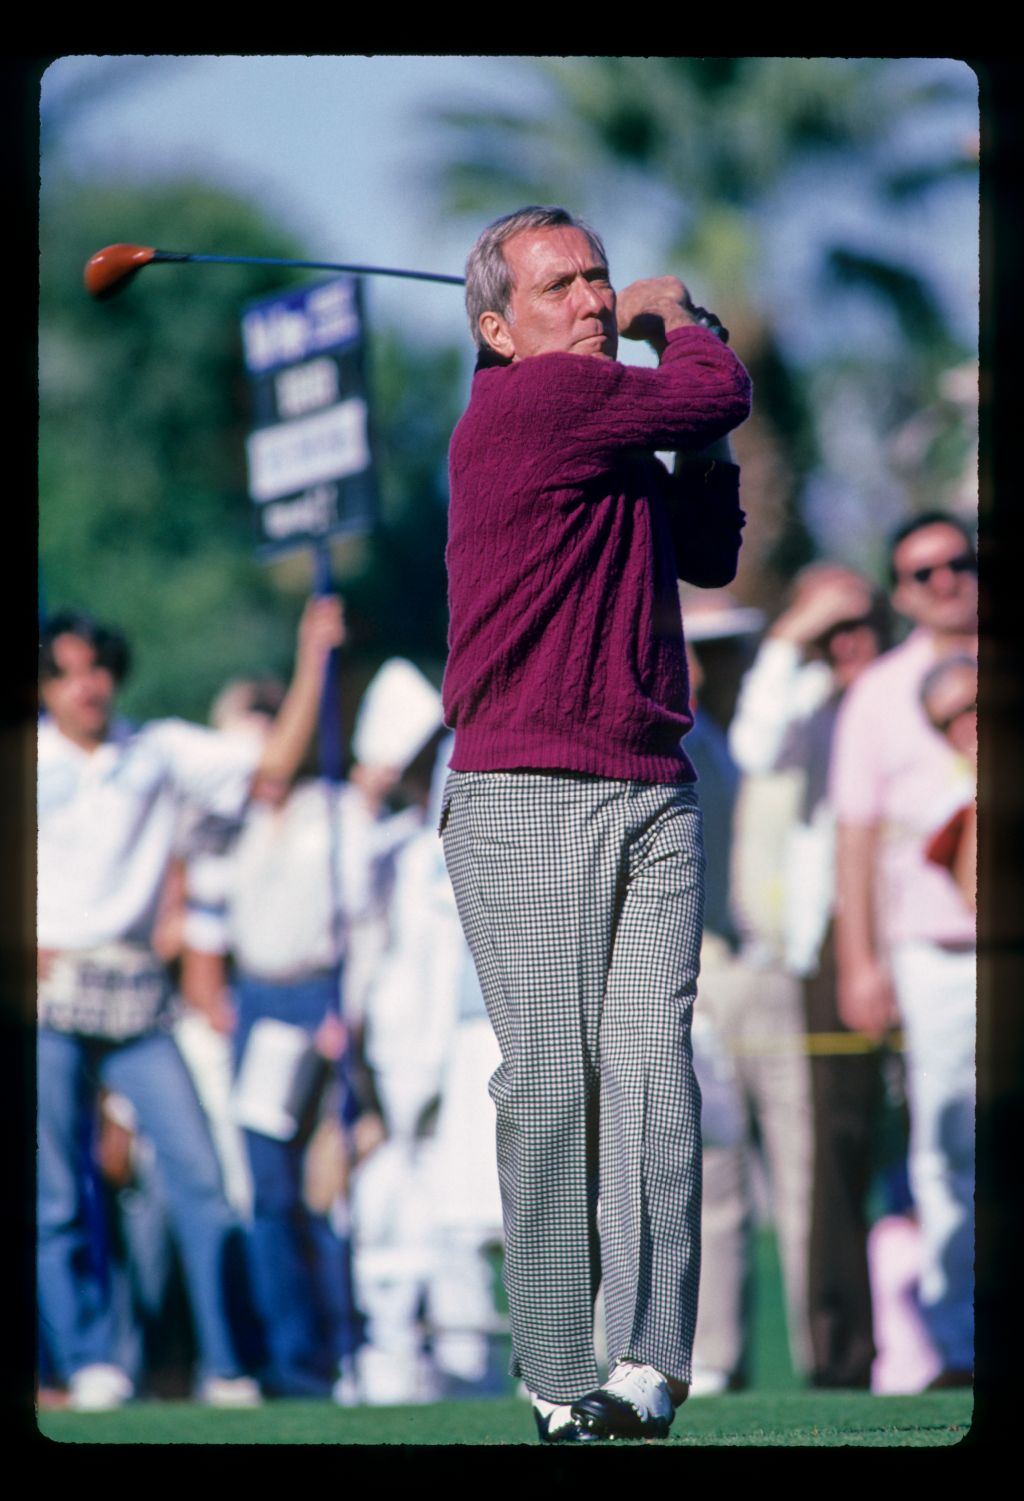 Singer Andy Williams tees off at the 1982 Bob Hope Desert Classic Golf Championship